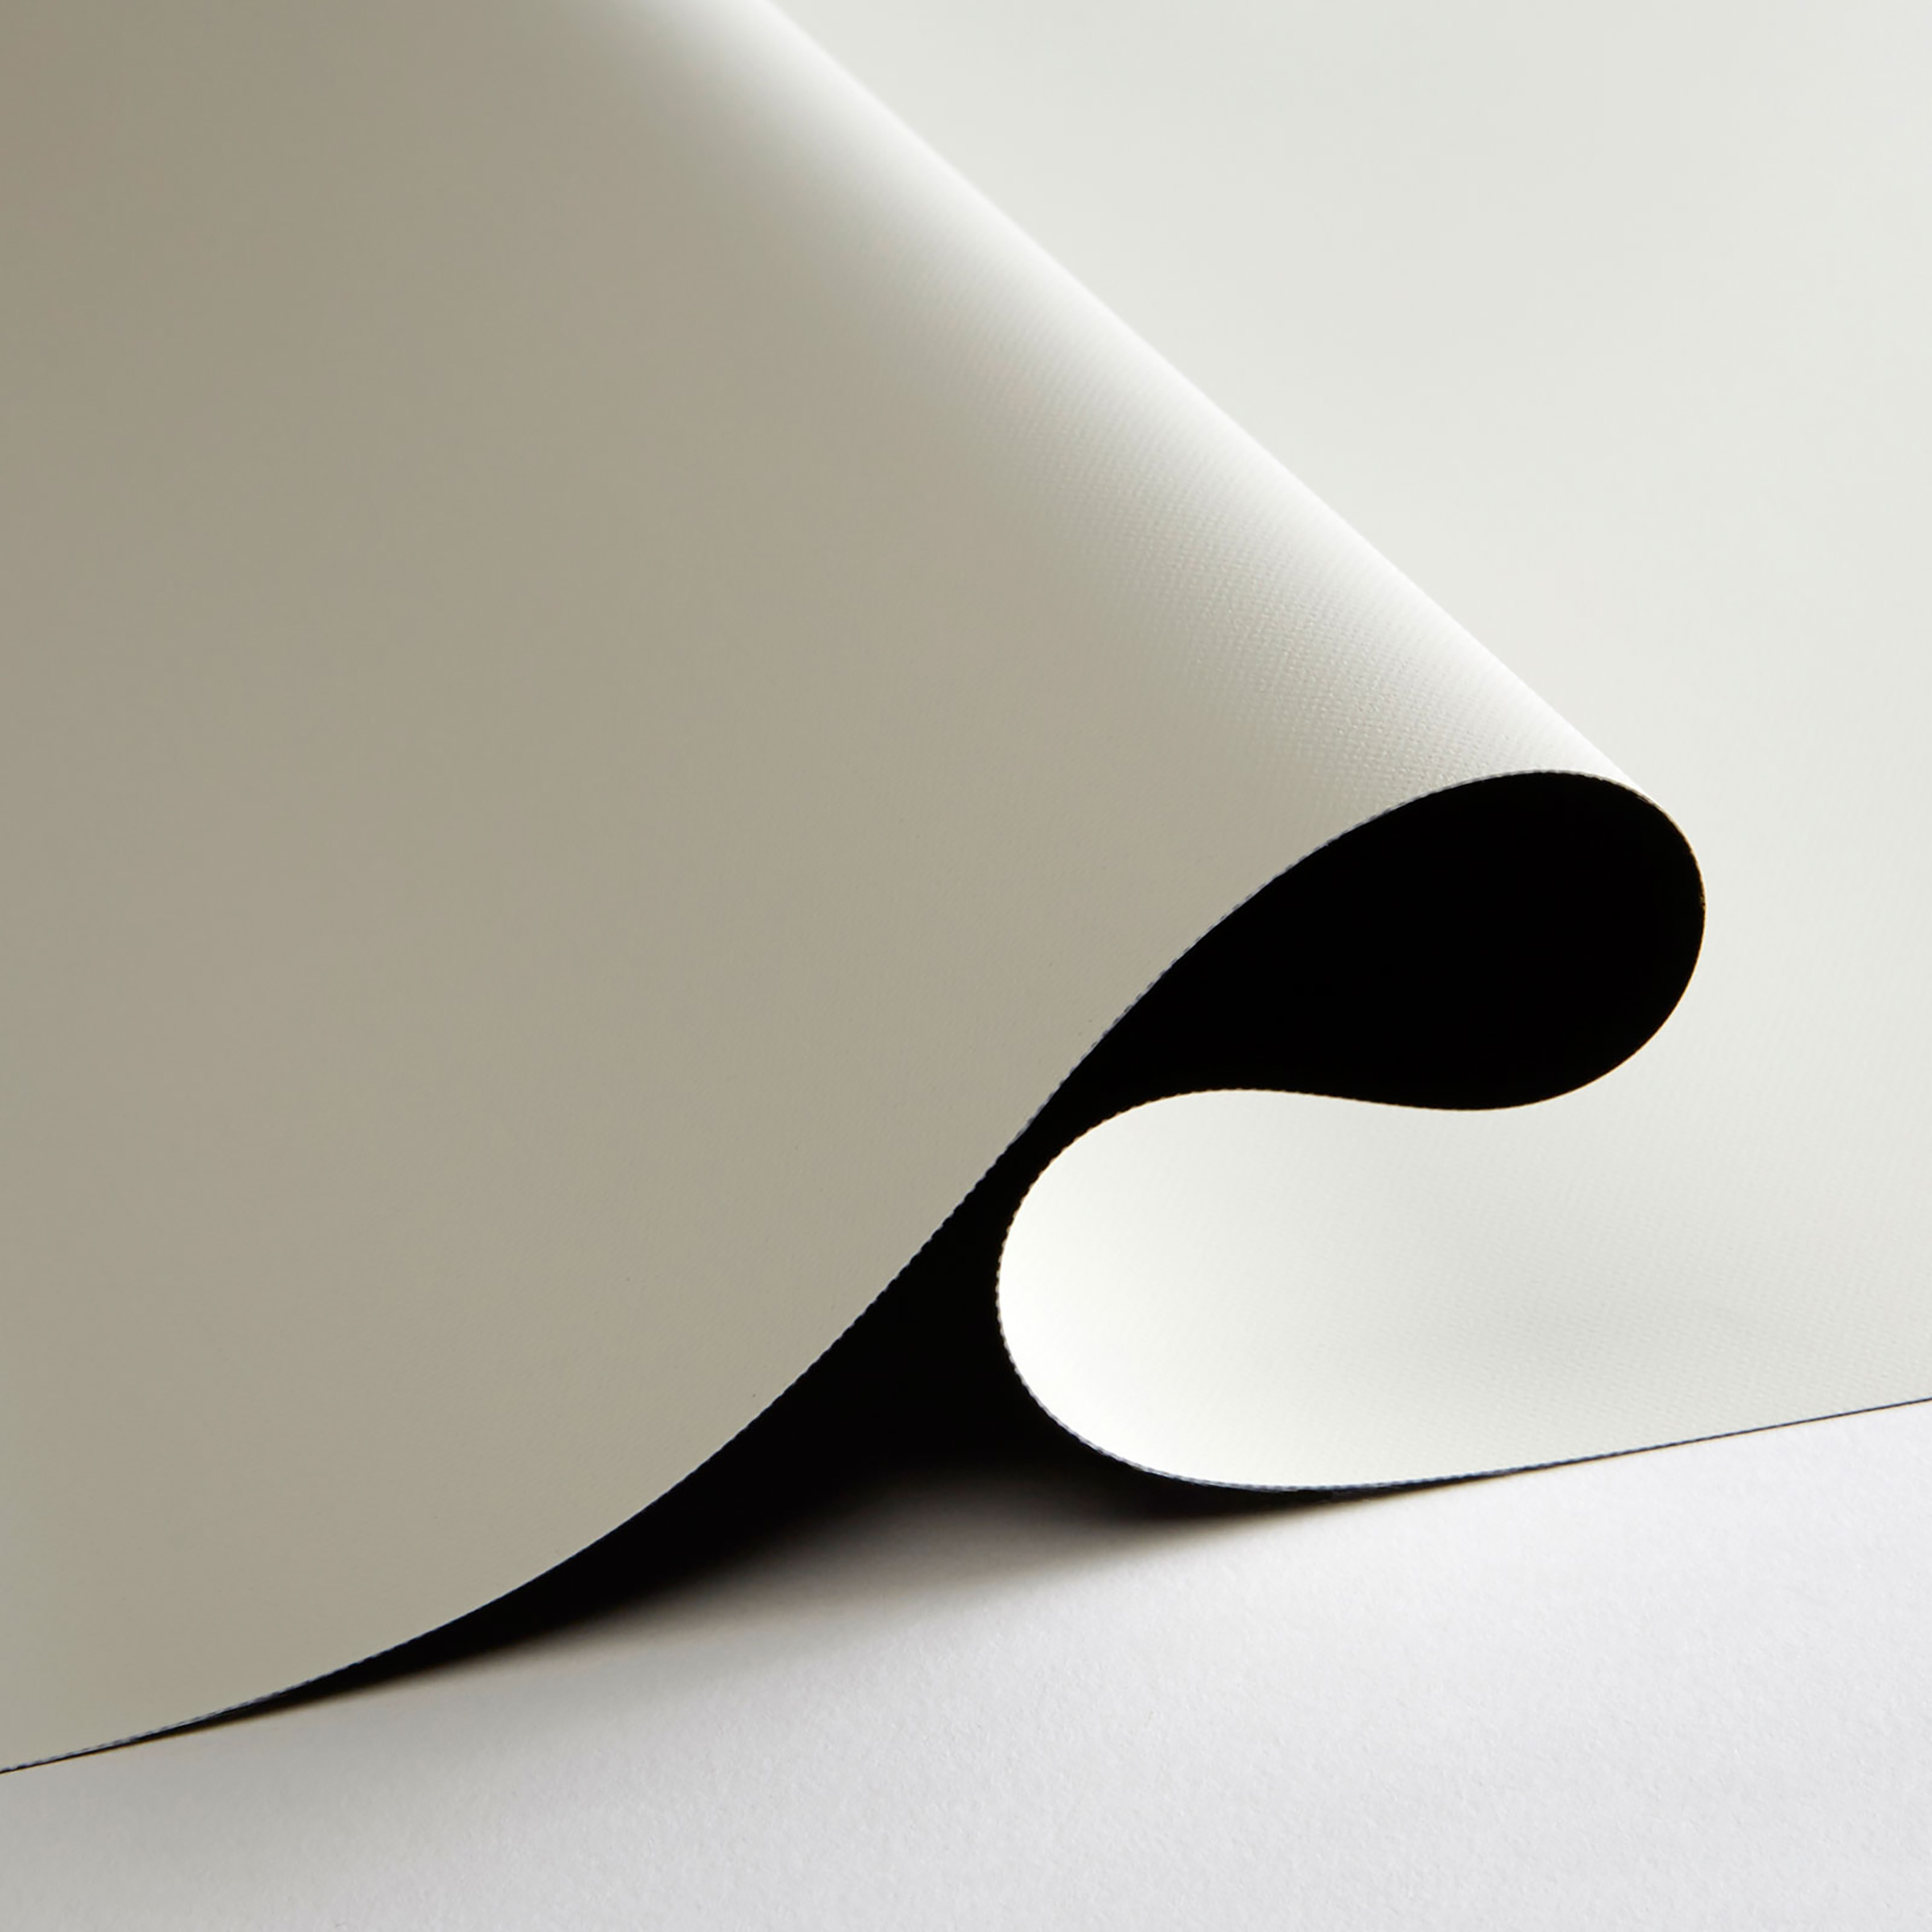 ProWhite Projector Screen Material